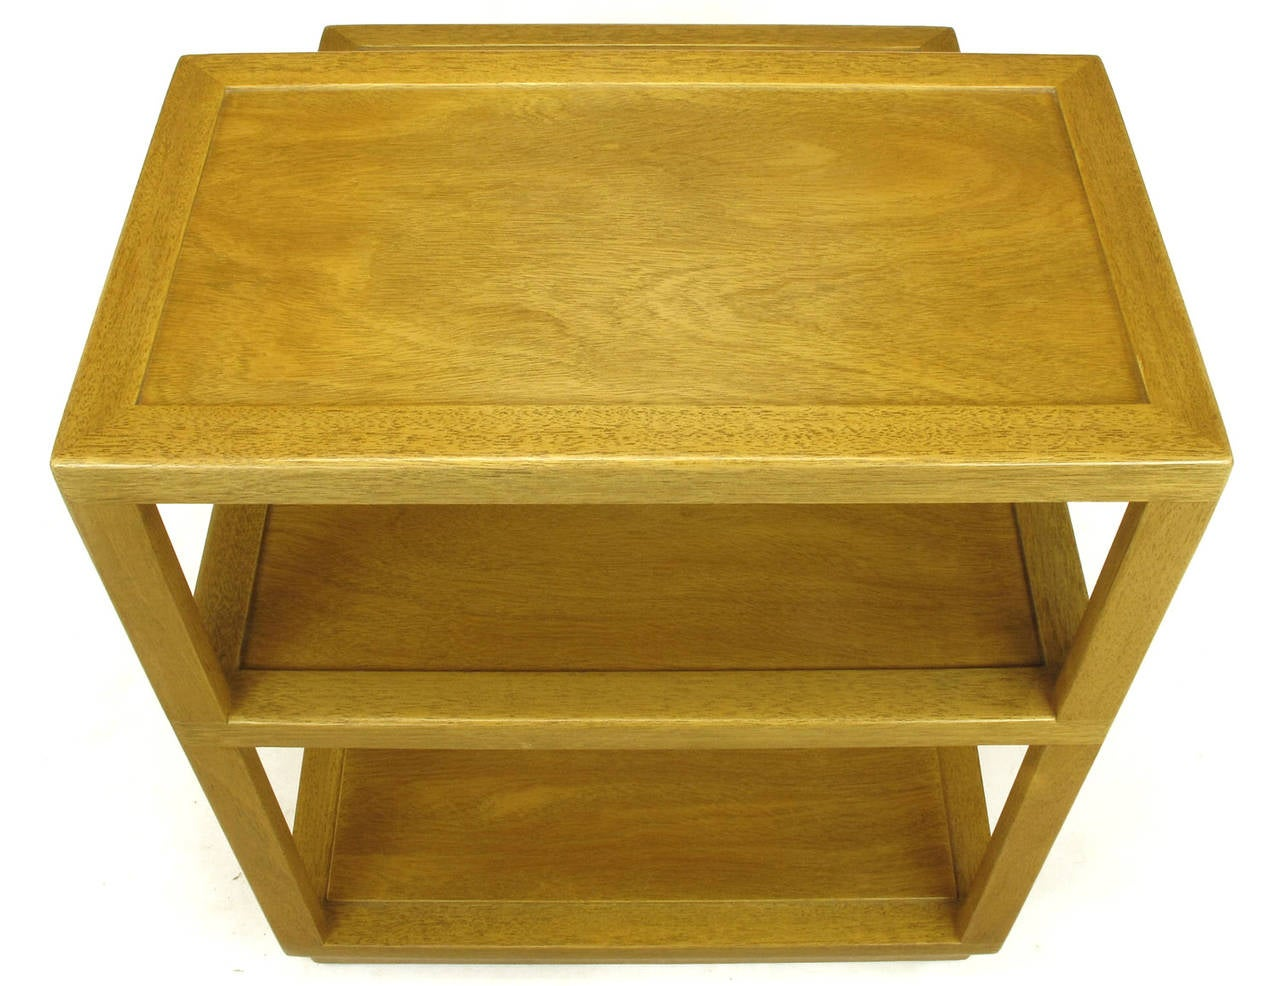 Edward Wormley Bleached Mahogany Tiered End Table for Dunbar 9